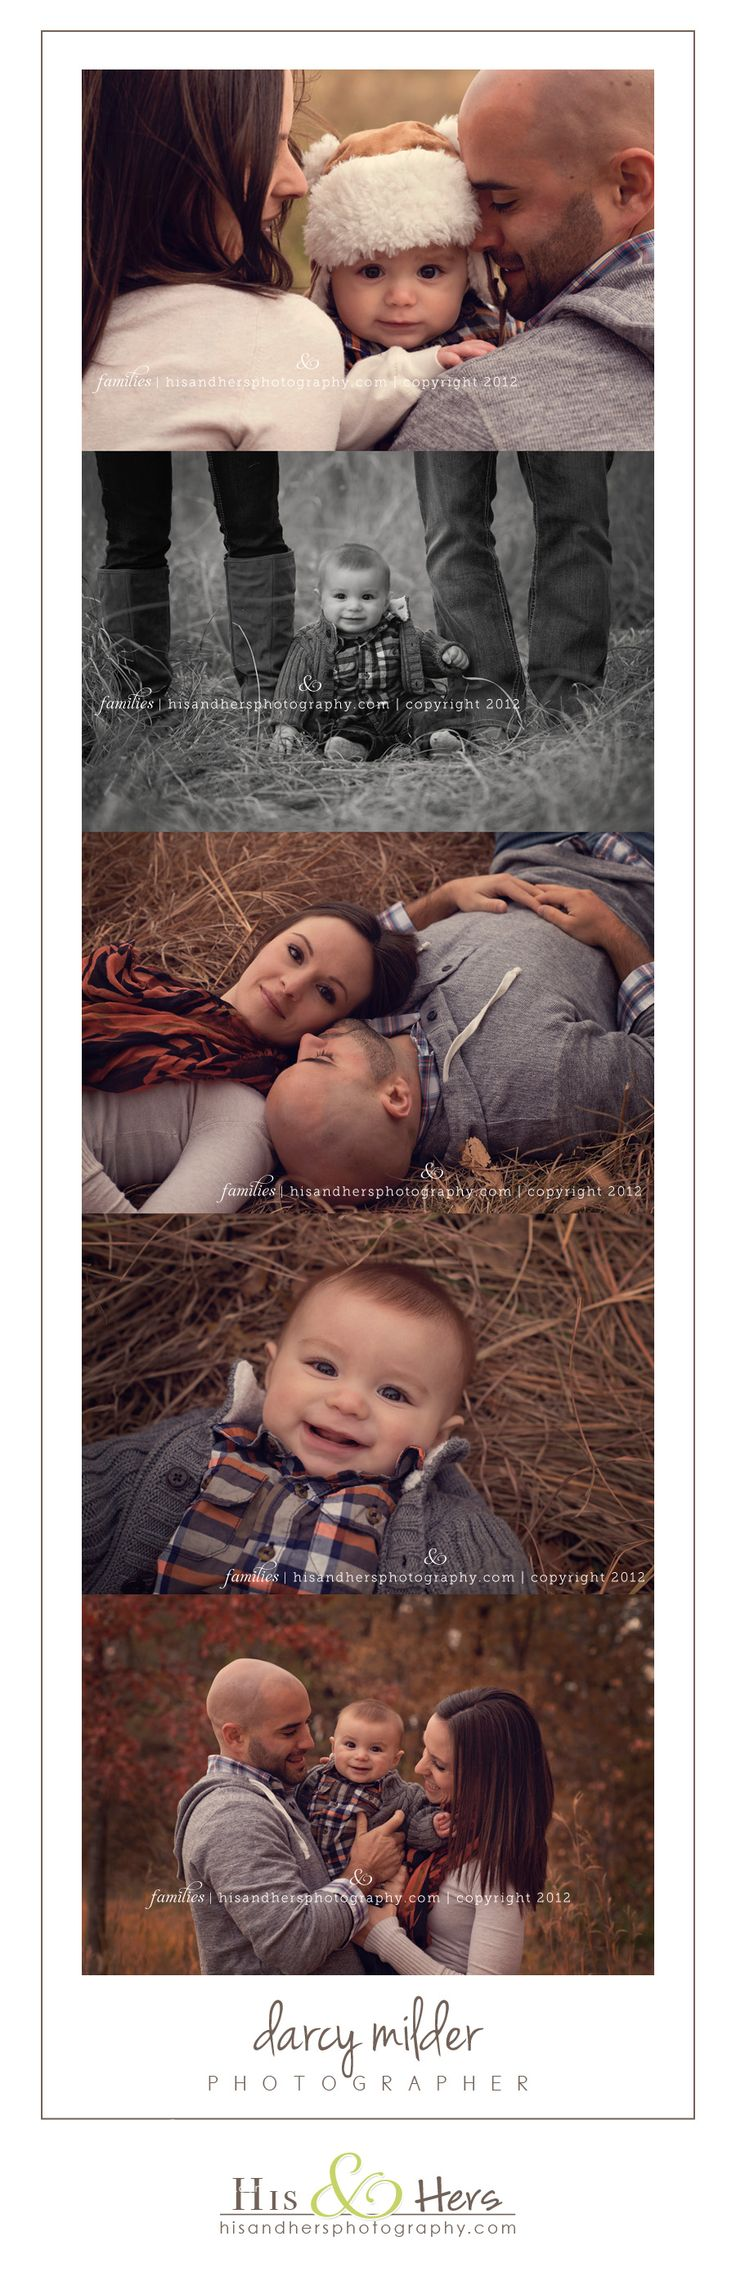 6+month+old+baby+/+family+portraits+|+Iowa+photographer,+Darcy+Milder+|+His+&+Hers